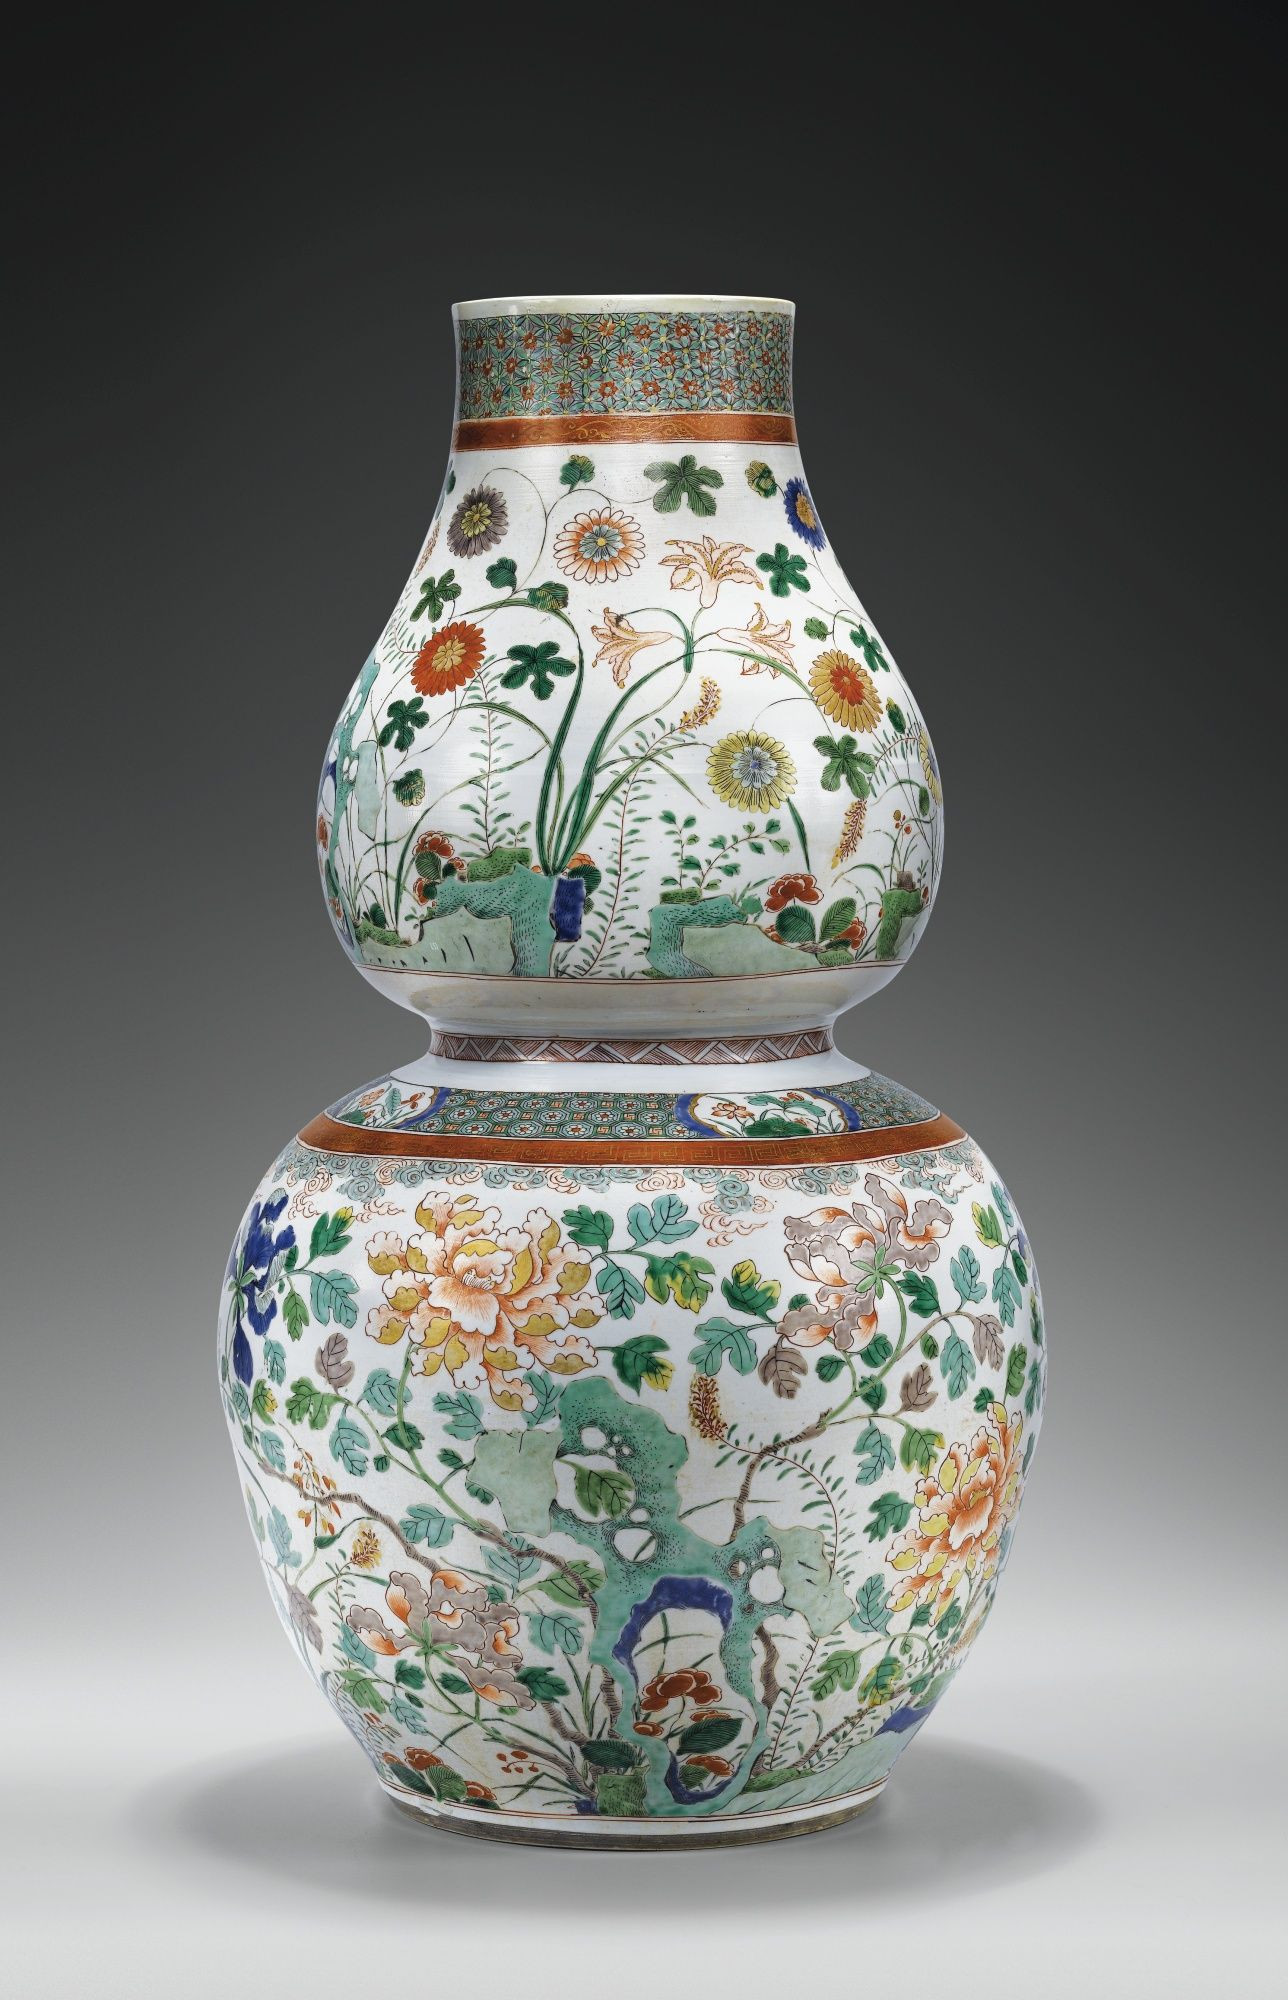 japanese cloisonne vase of large antique chinese craquel famille rose vase 19th cent within an unusual large double gourd shaped famille verte vase qing dynasty kangxi